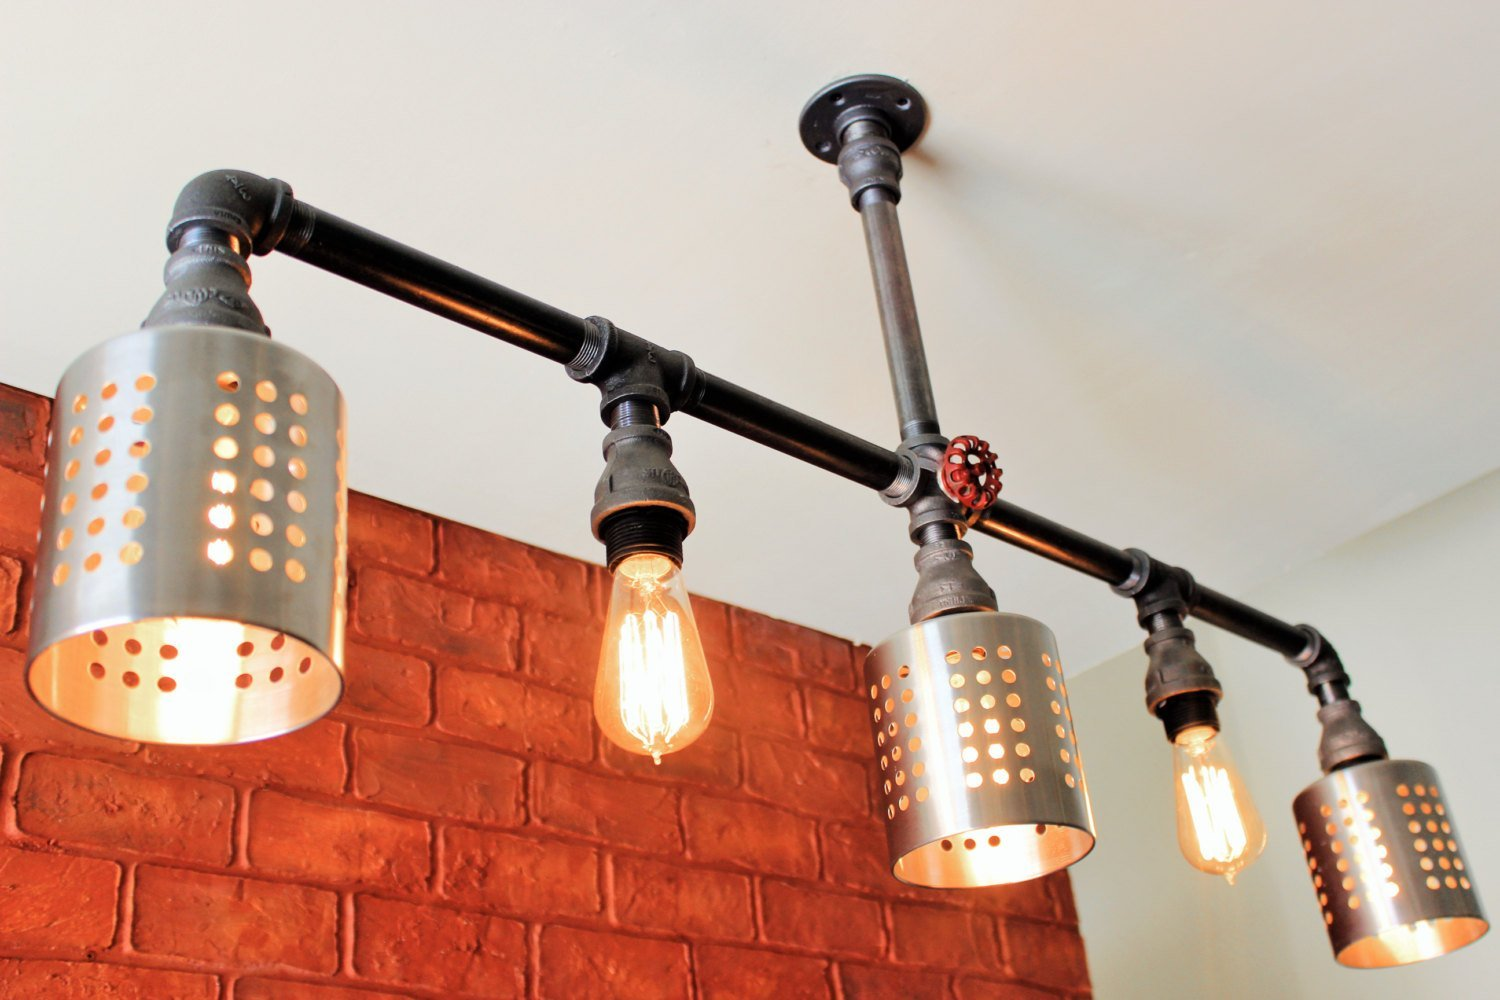 com beam steampunk chandelier vintage lights all west steampunkist wood products ninth